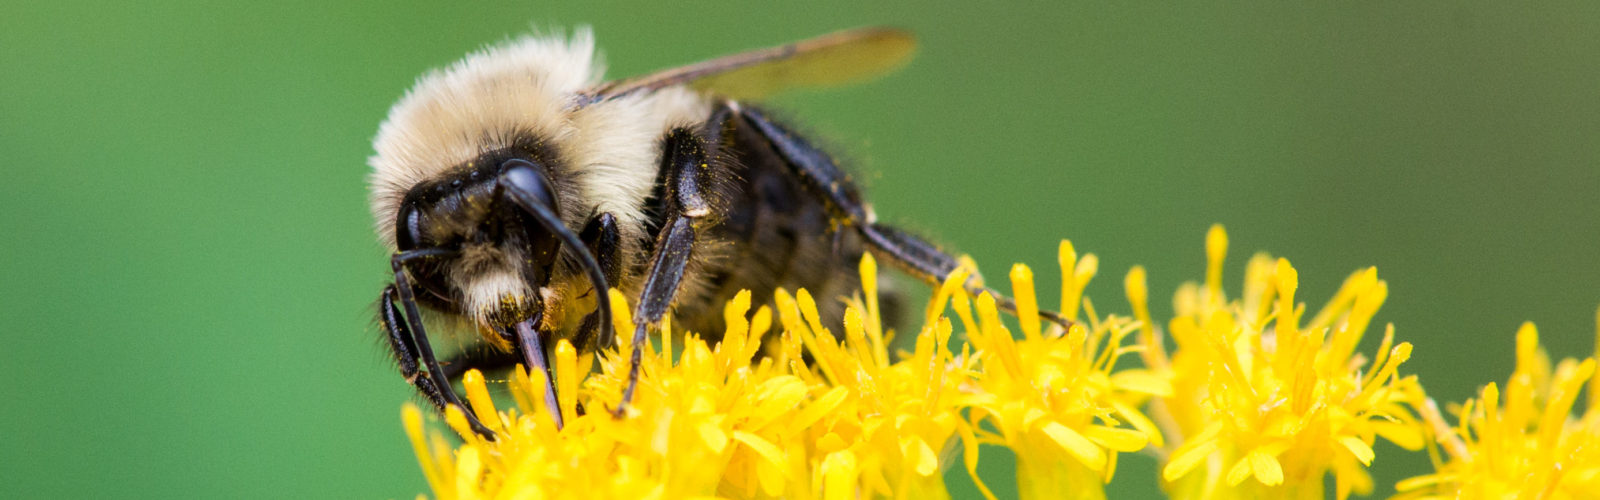 Male common eastern bumble bee